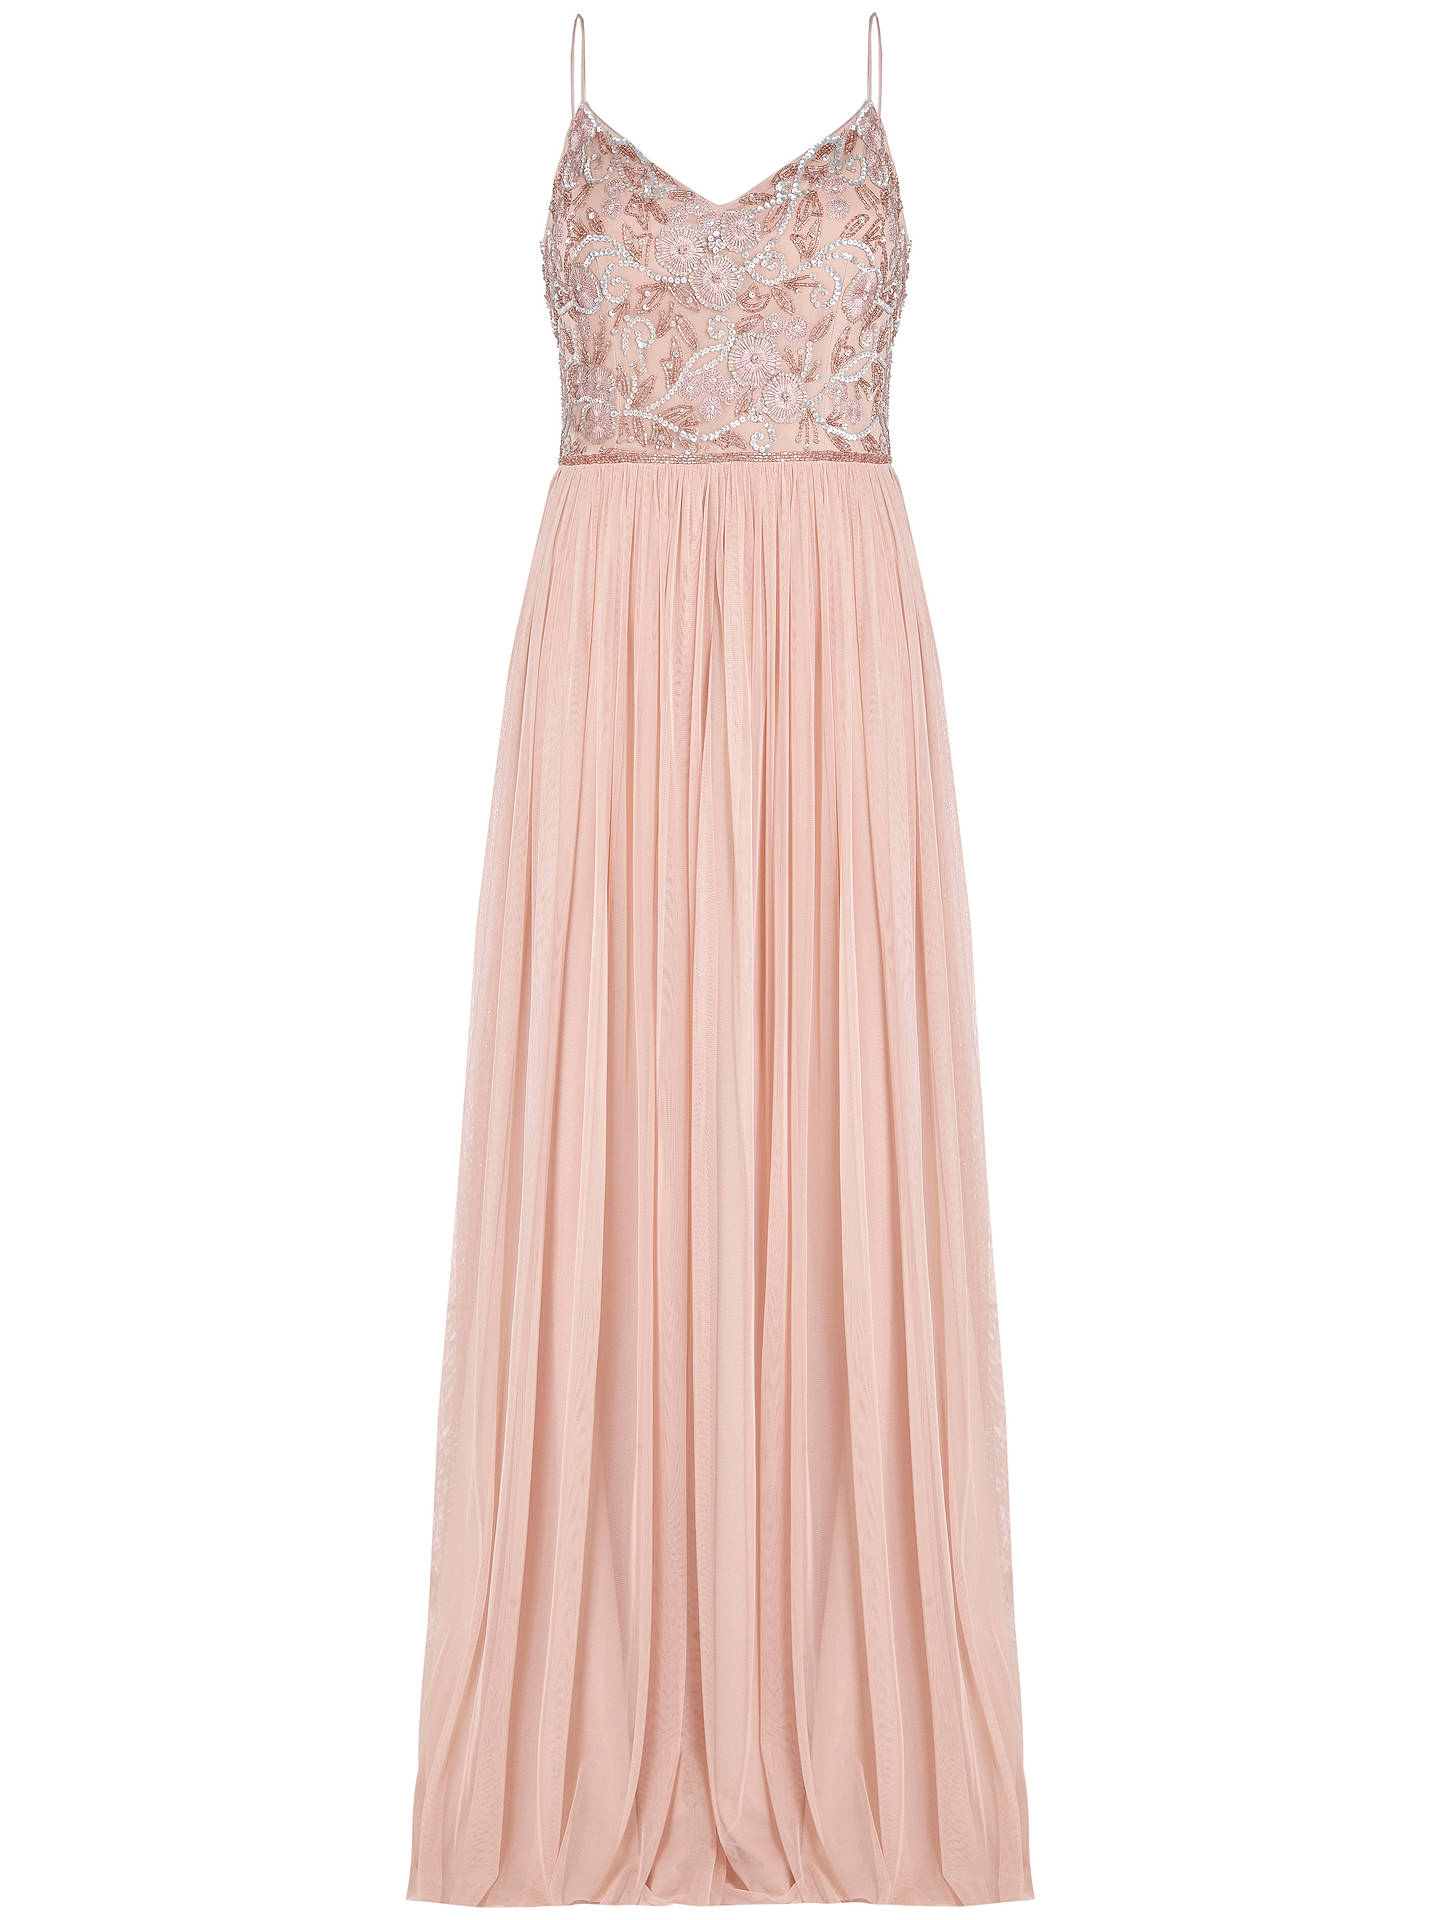 Buy Adrianna Papell Long Beaded Dress, Blush, 6 Online at johnlewis.com